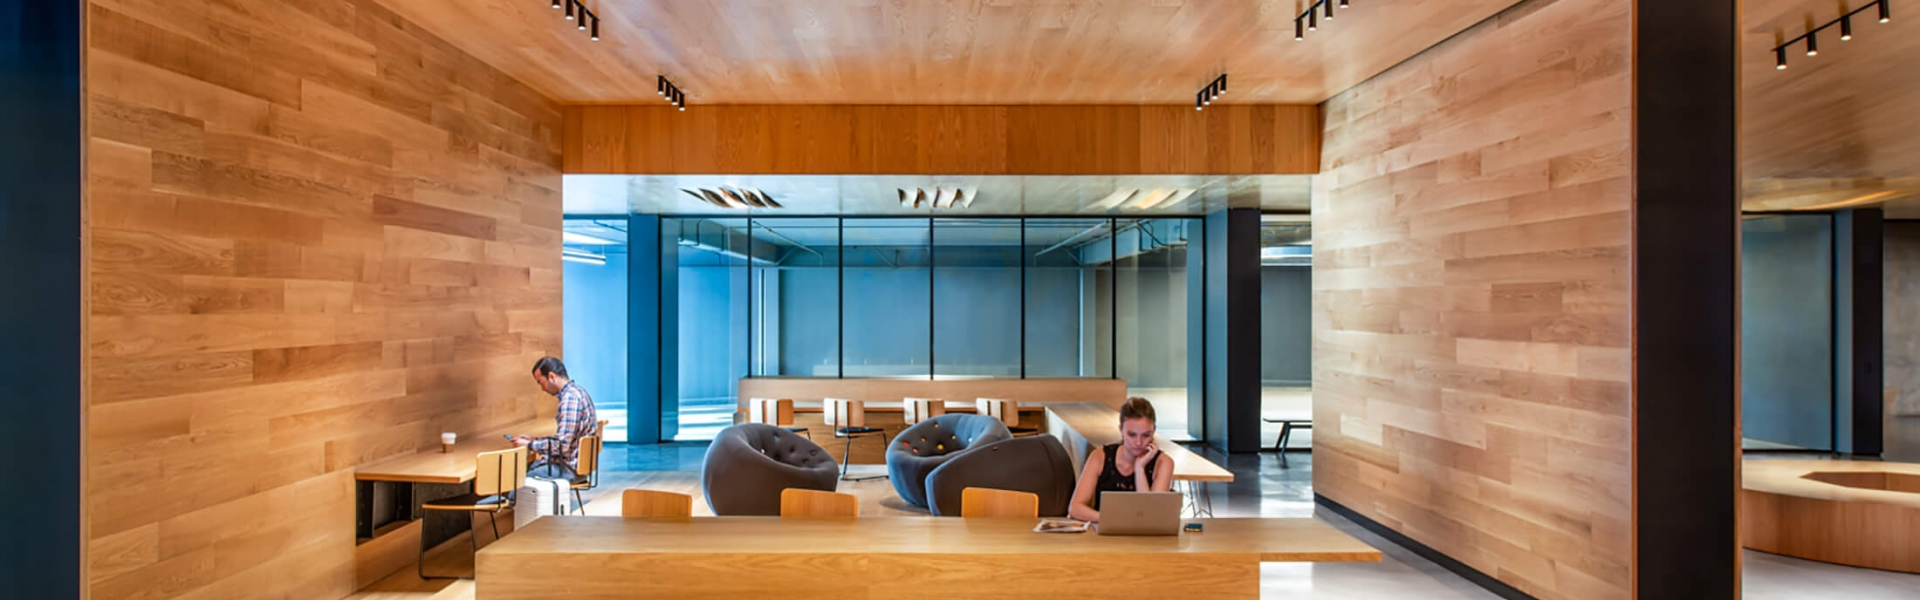 people gather in communal workspace which is entirely wooden and modern